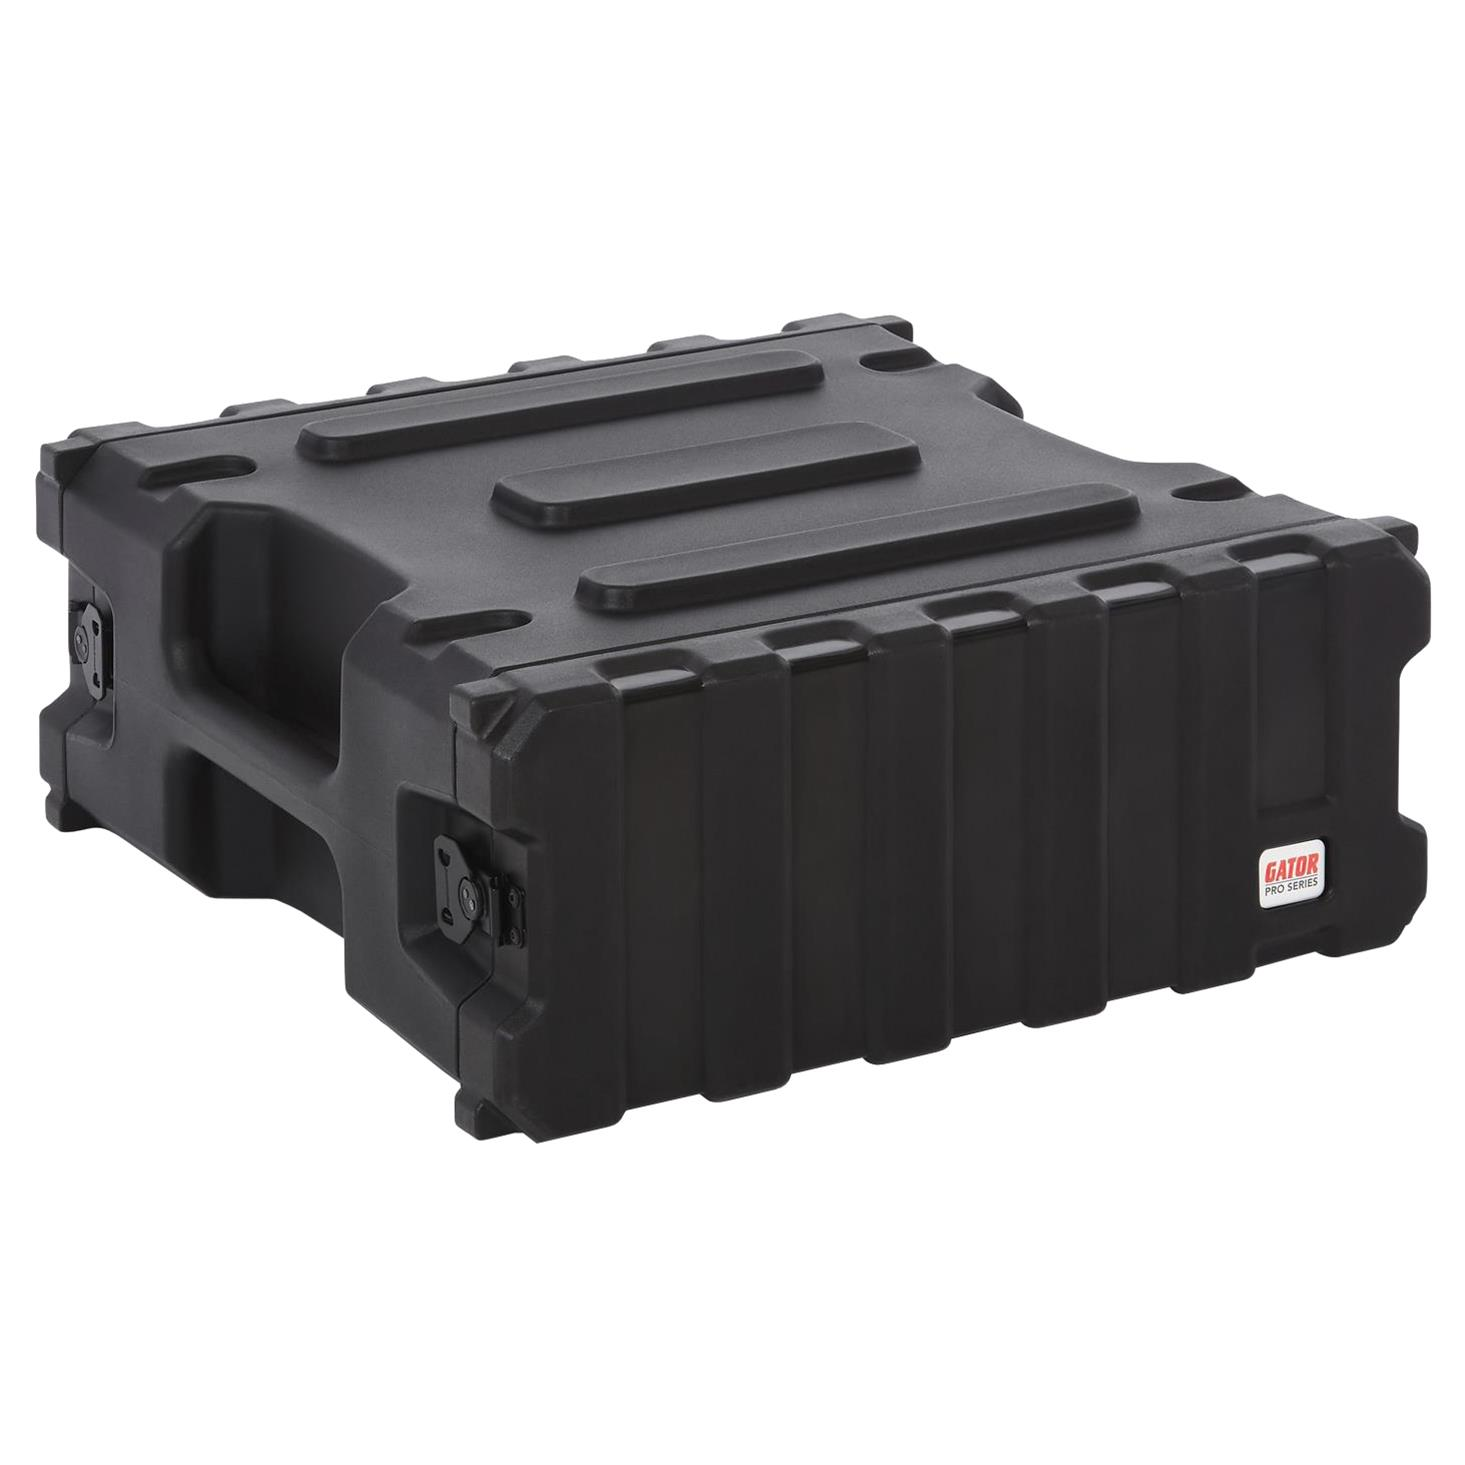 Gator Cases Pro Series Equipment Rack Cases G-PRO-4U-19